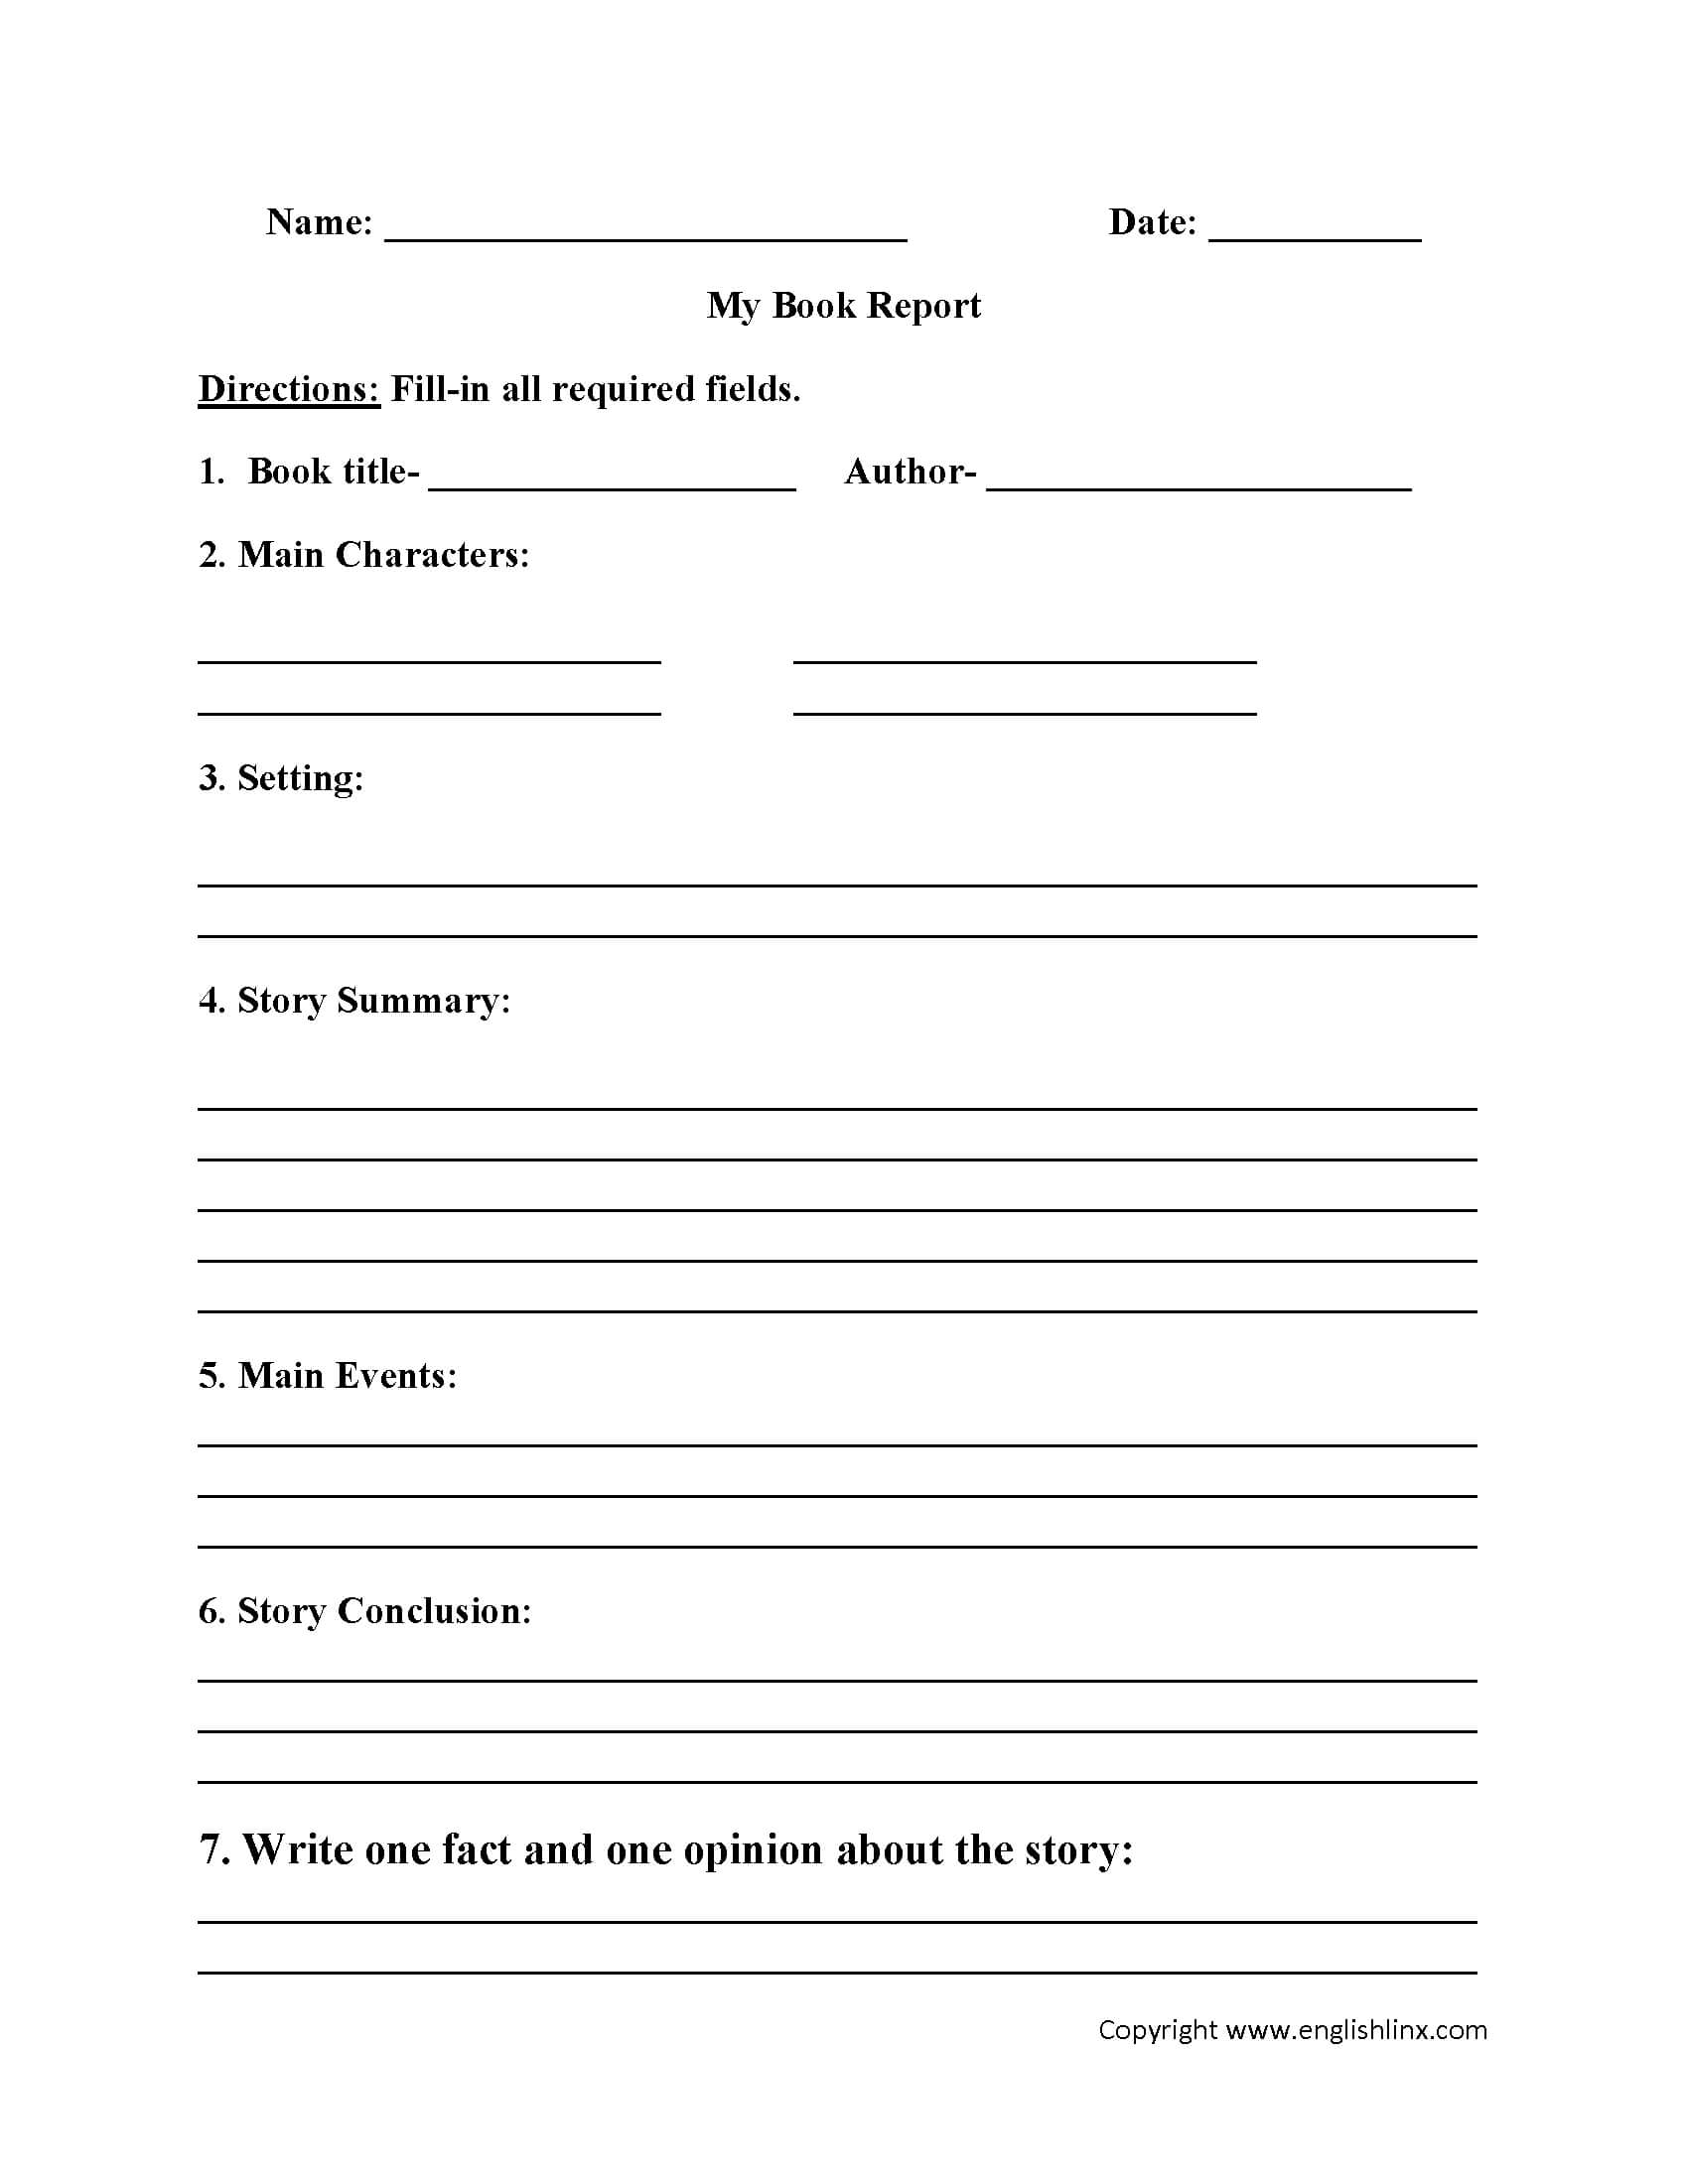 My Book Report Worksheet | Book Report Templates, Book pertaining to First Grade Book Report Template